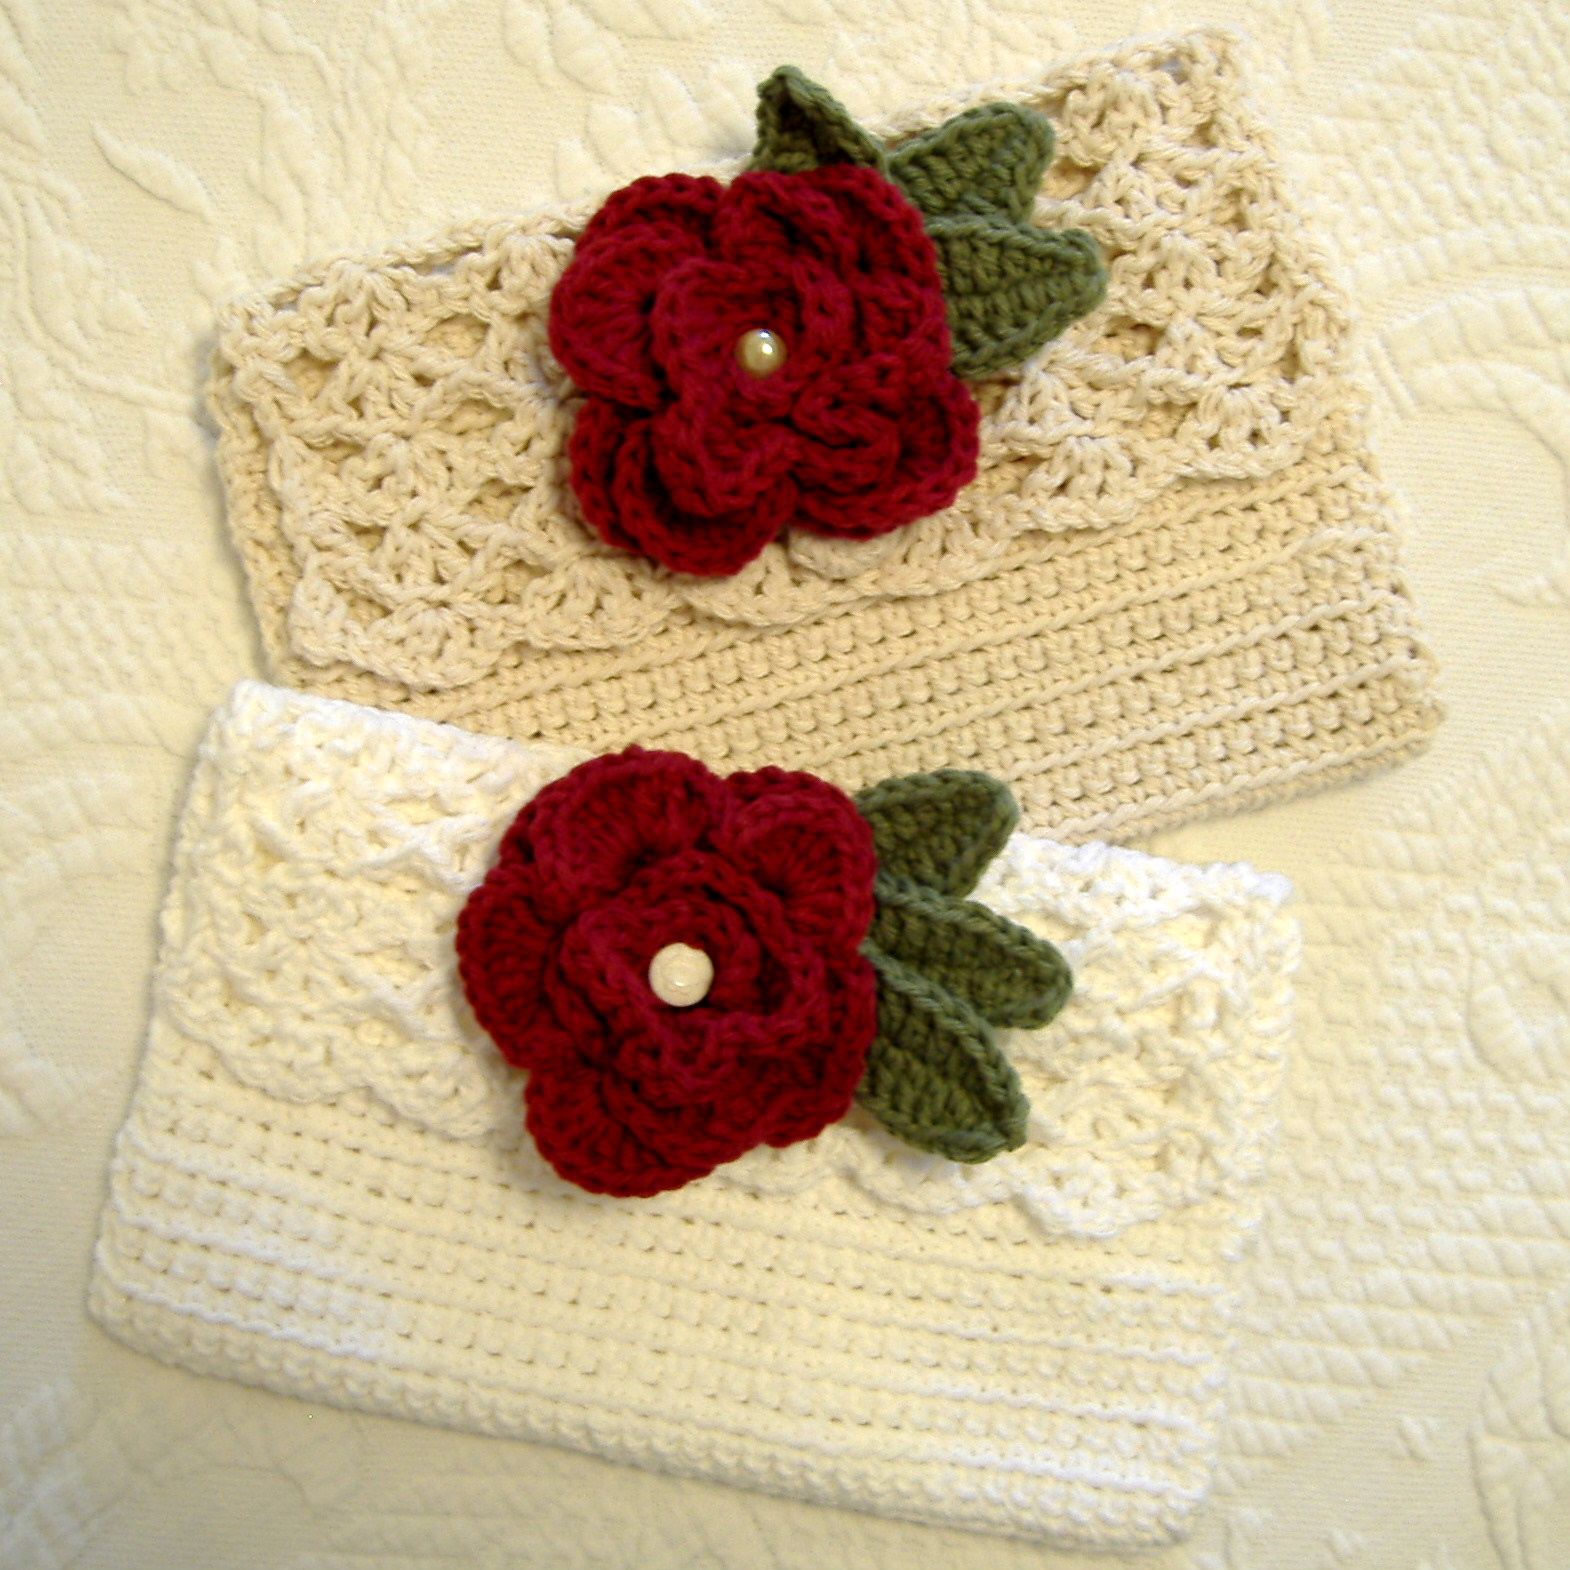 Crocheted Handbag : CROCHET PATTERNS FOR A PURSE ? Crochet Projects